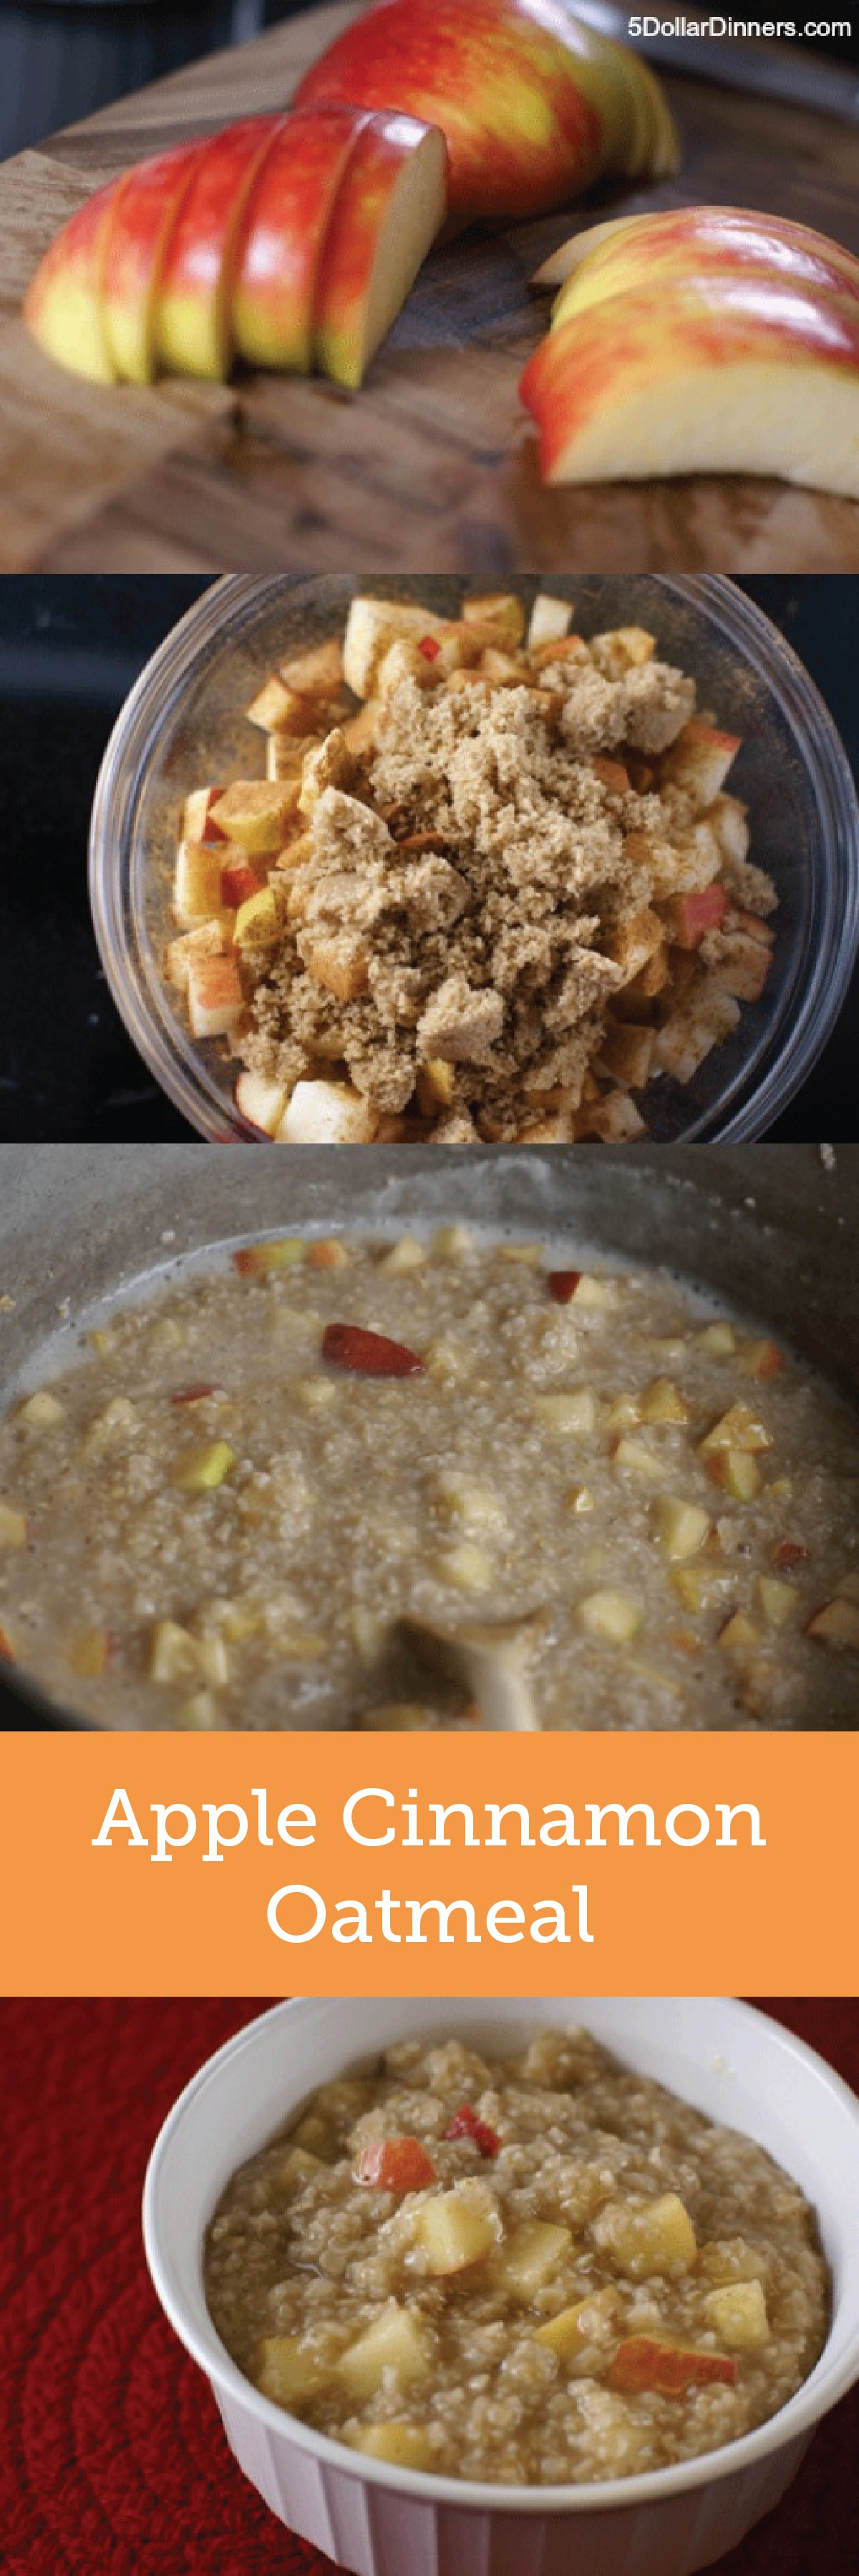 Start your morning off with a hint of fall flavor from this Apple Cinnamon Oatmeal recipe. You'll love that the brown sugar adds a wonderfully unique molasses touch.